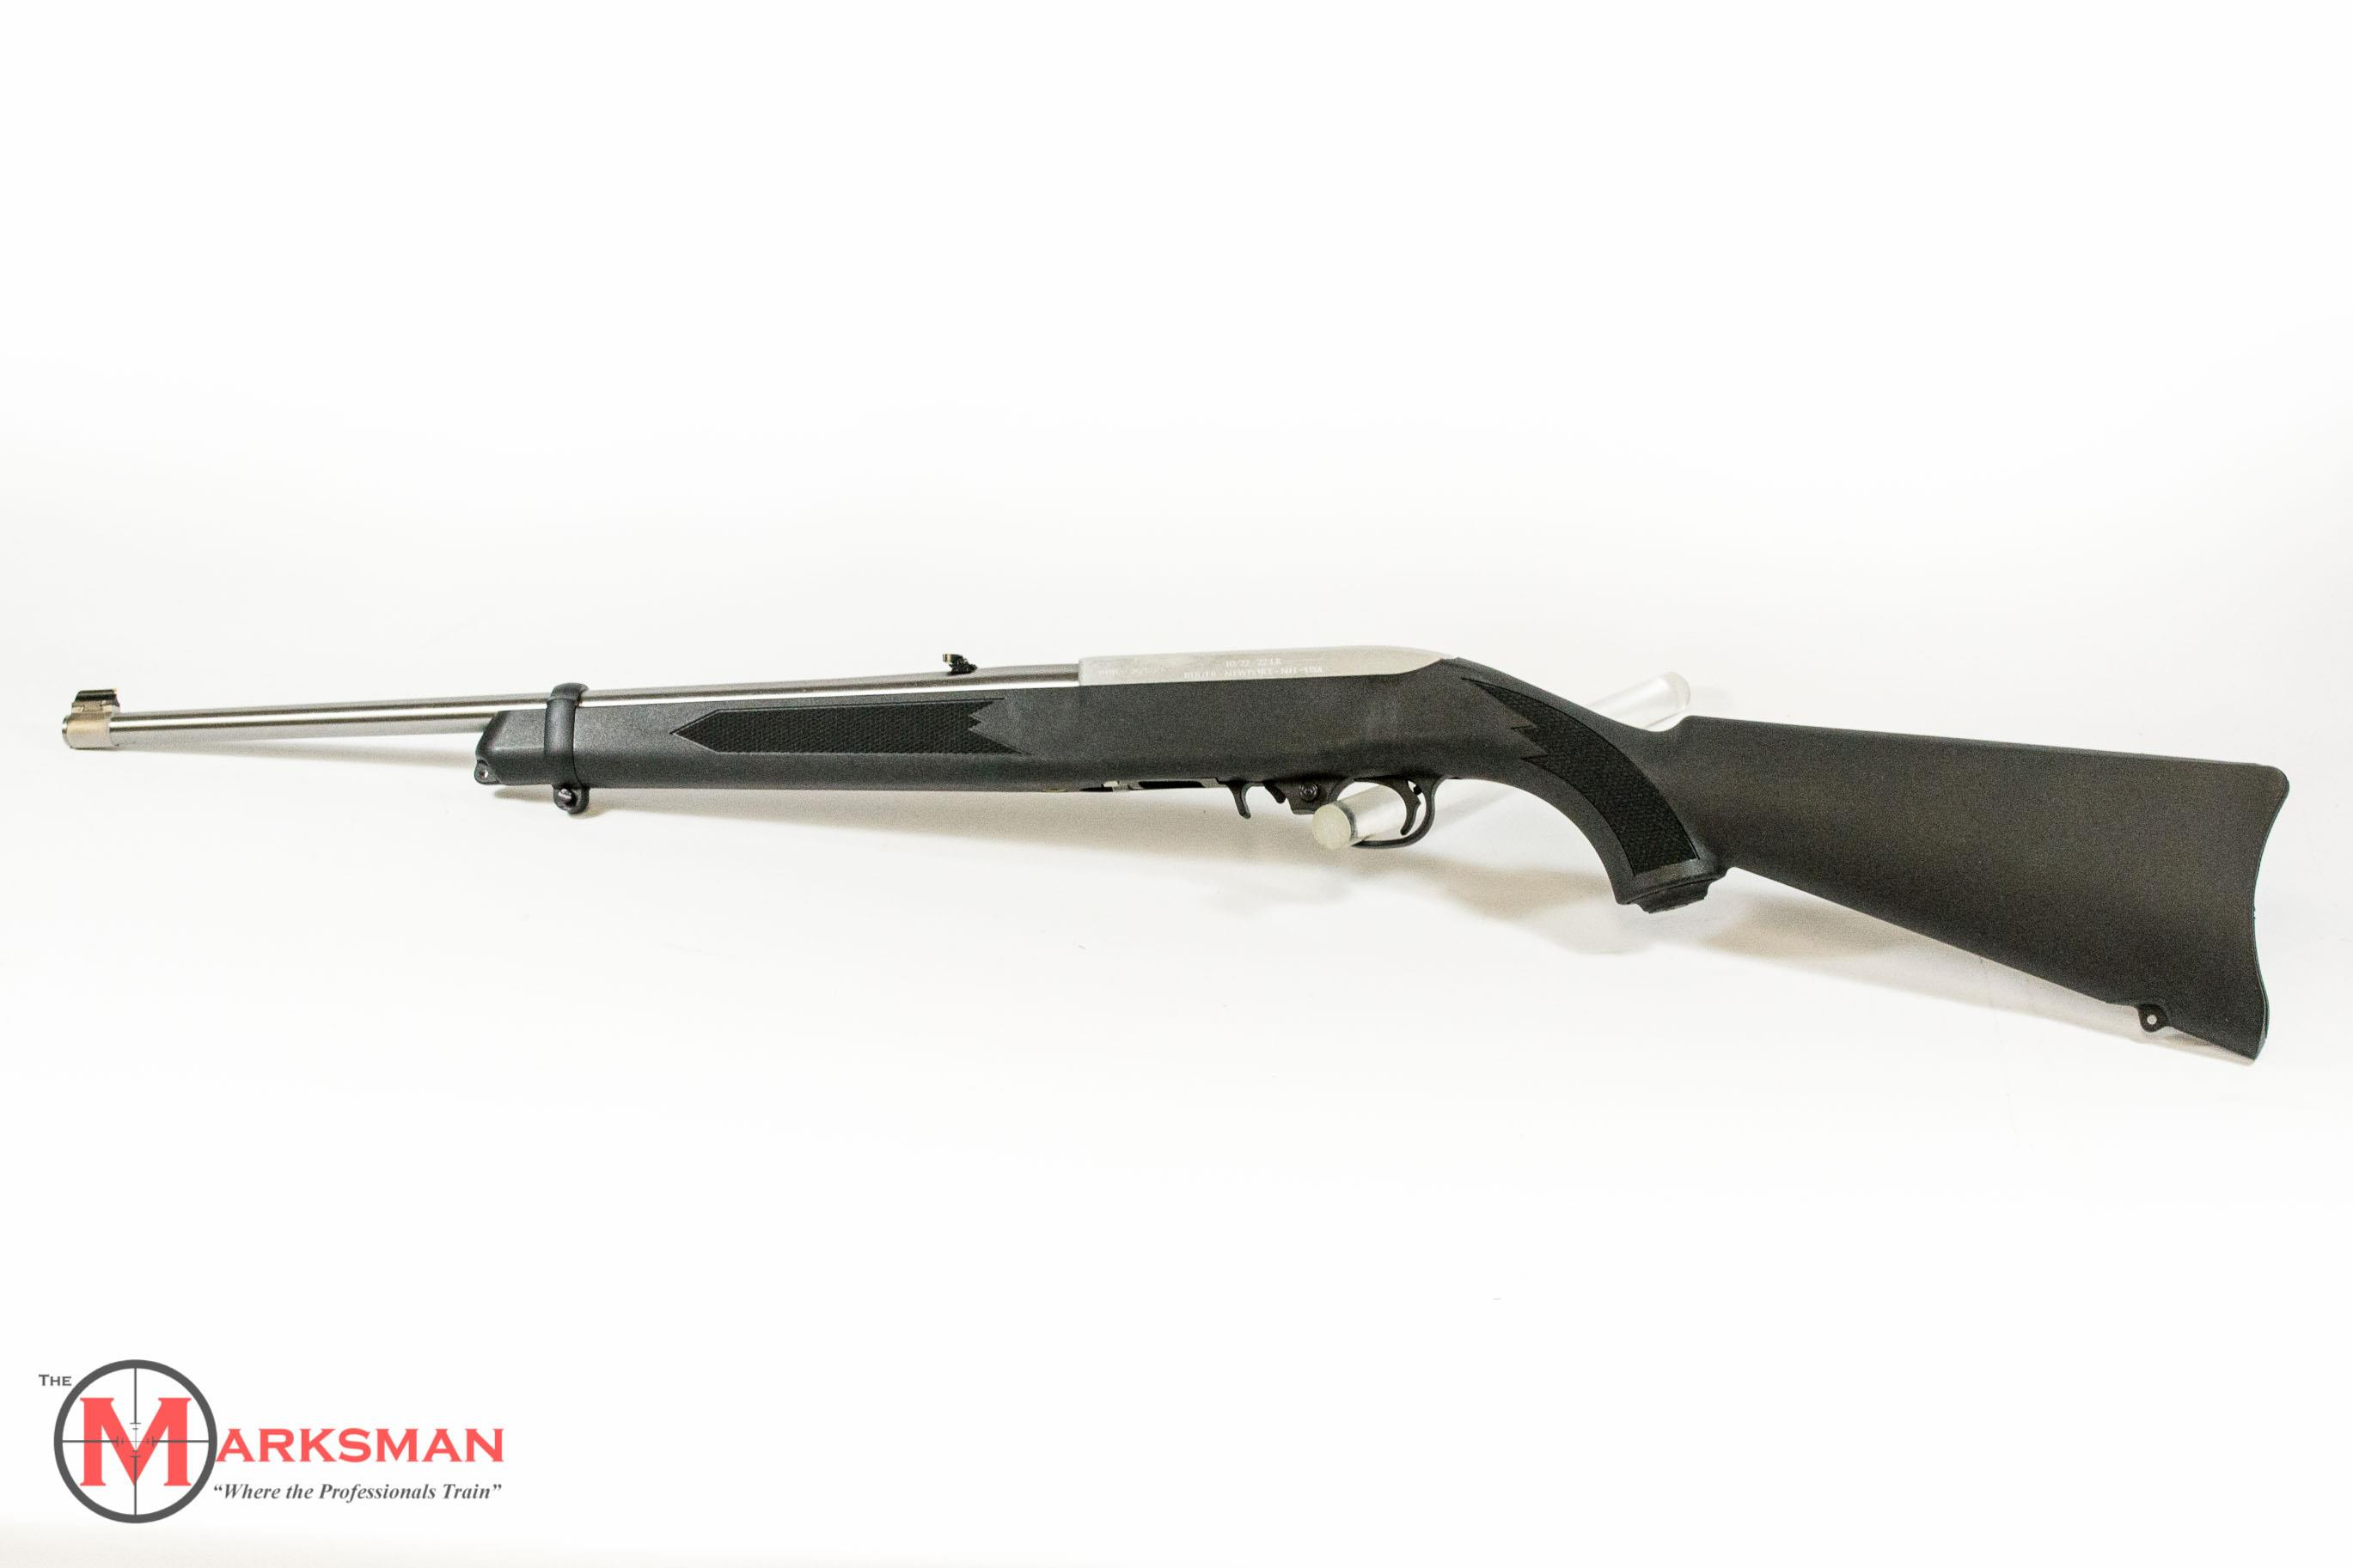 Ruger Stainless 10/22 Carbine .22 lr NEW  Guns > Rifles > Ruger Rifles > 10-22